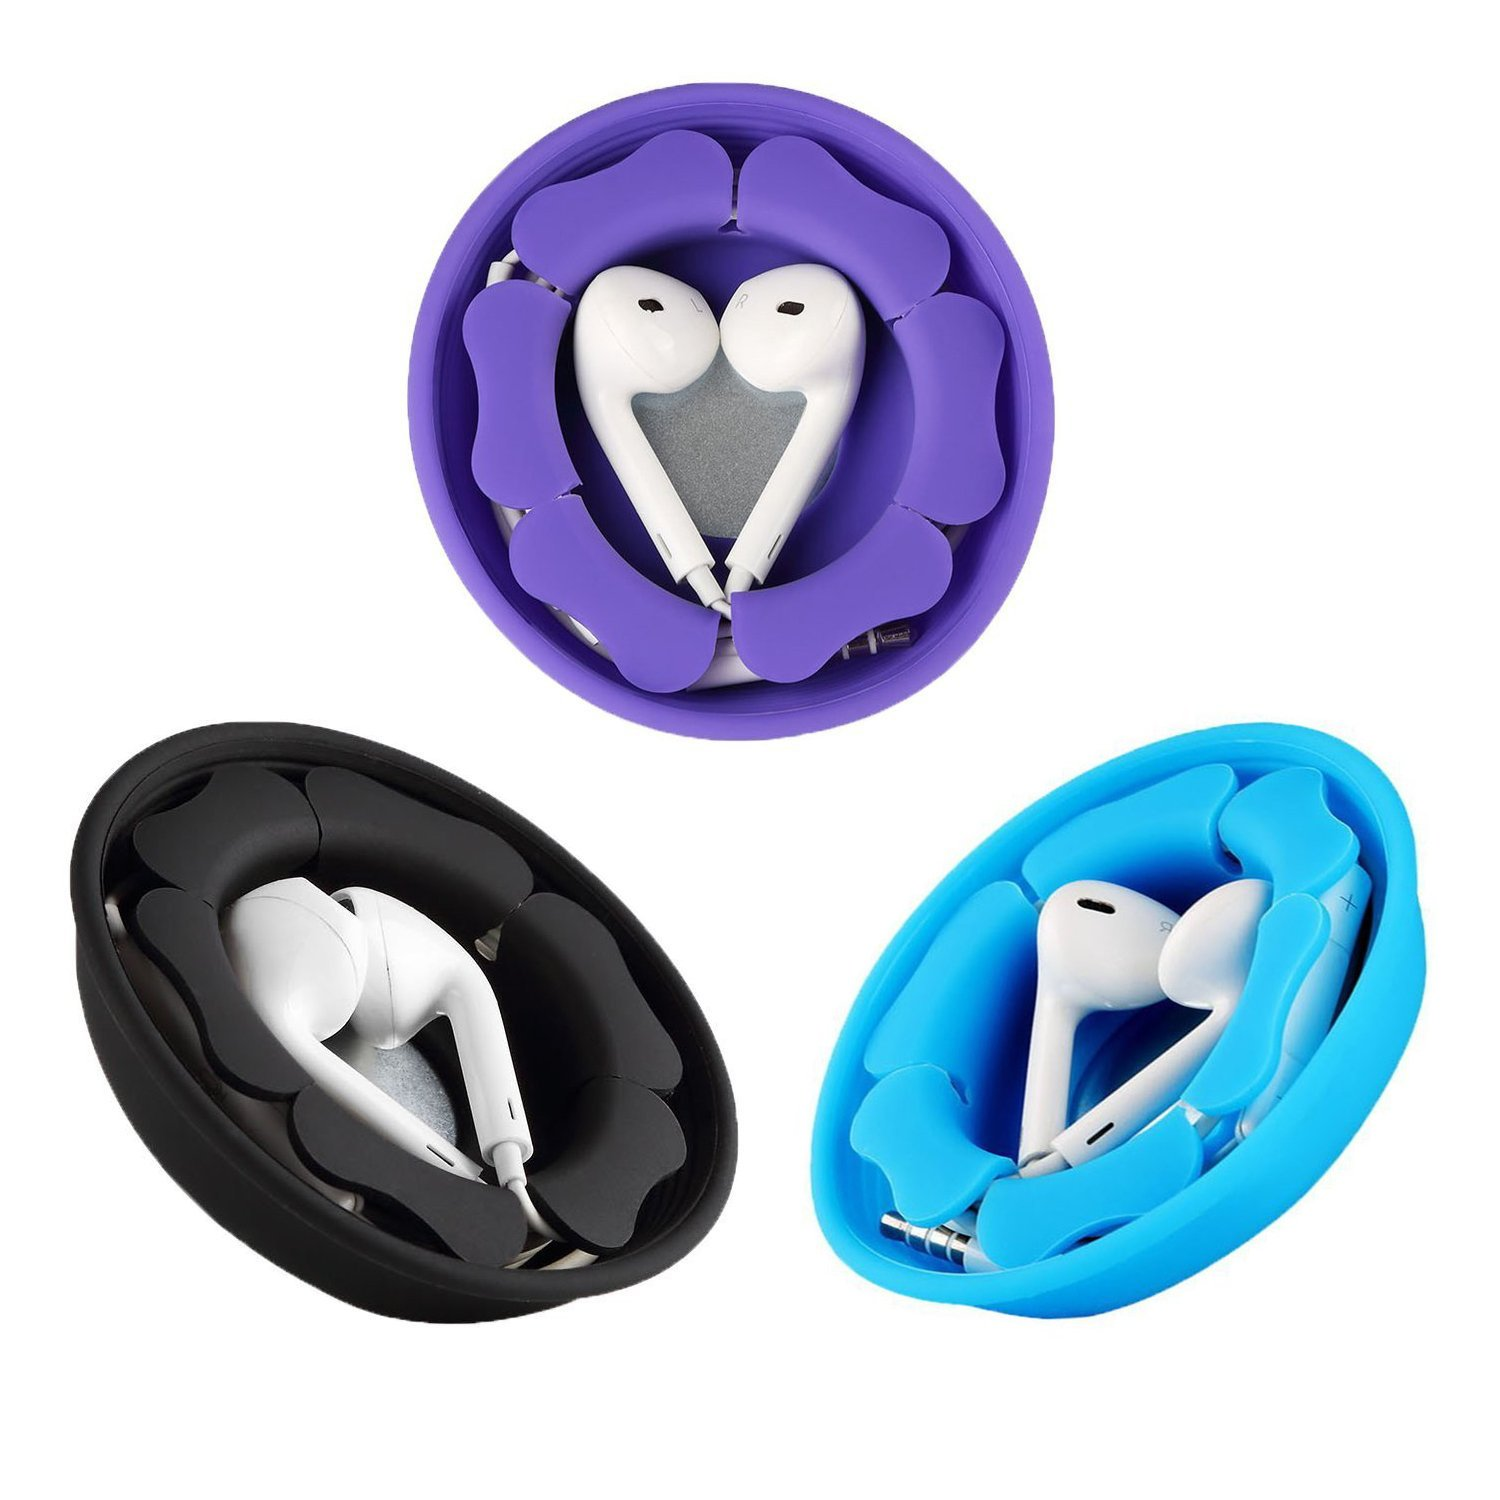 Earbud Holder Earphone Case (2 Pack), MAIRUI Tangle Free Cord Organizer Earbuds Wrap Silicone Magnetic Headphone Holder Storage Case Cable Keeper for iPhone Apple/Samsung/Sony Earphones (2 Black)